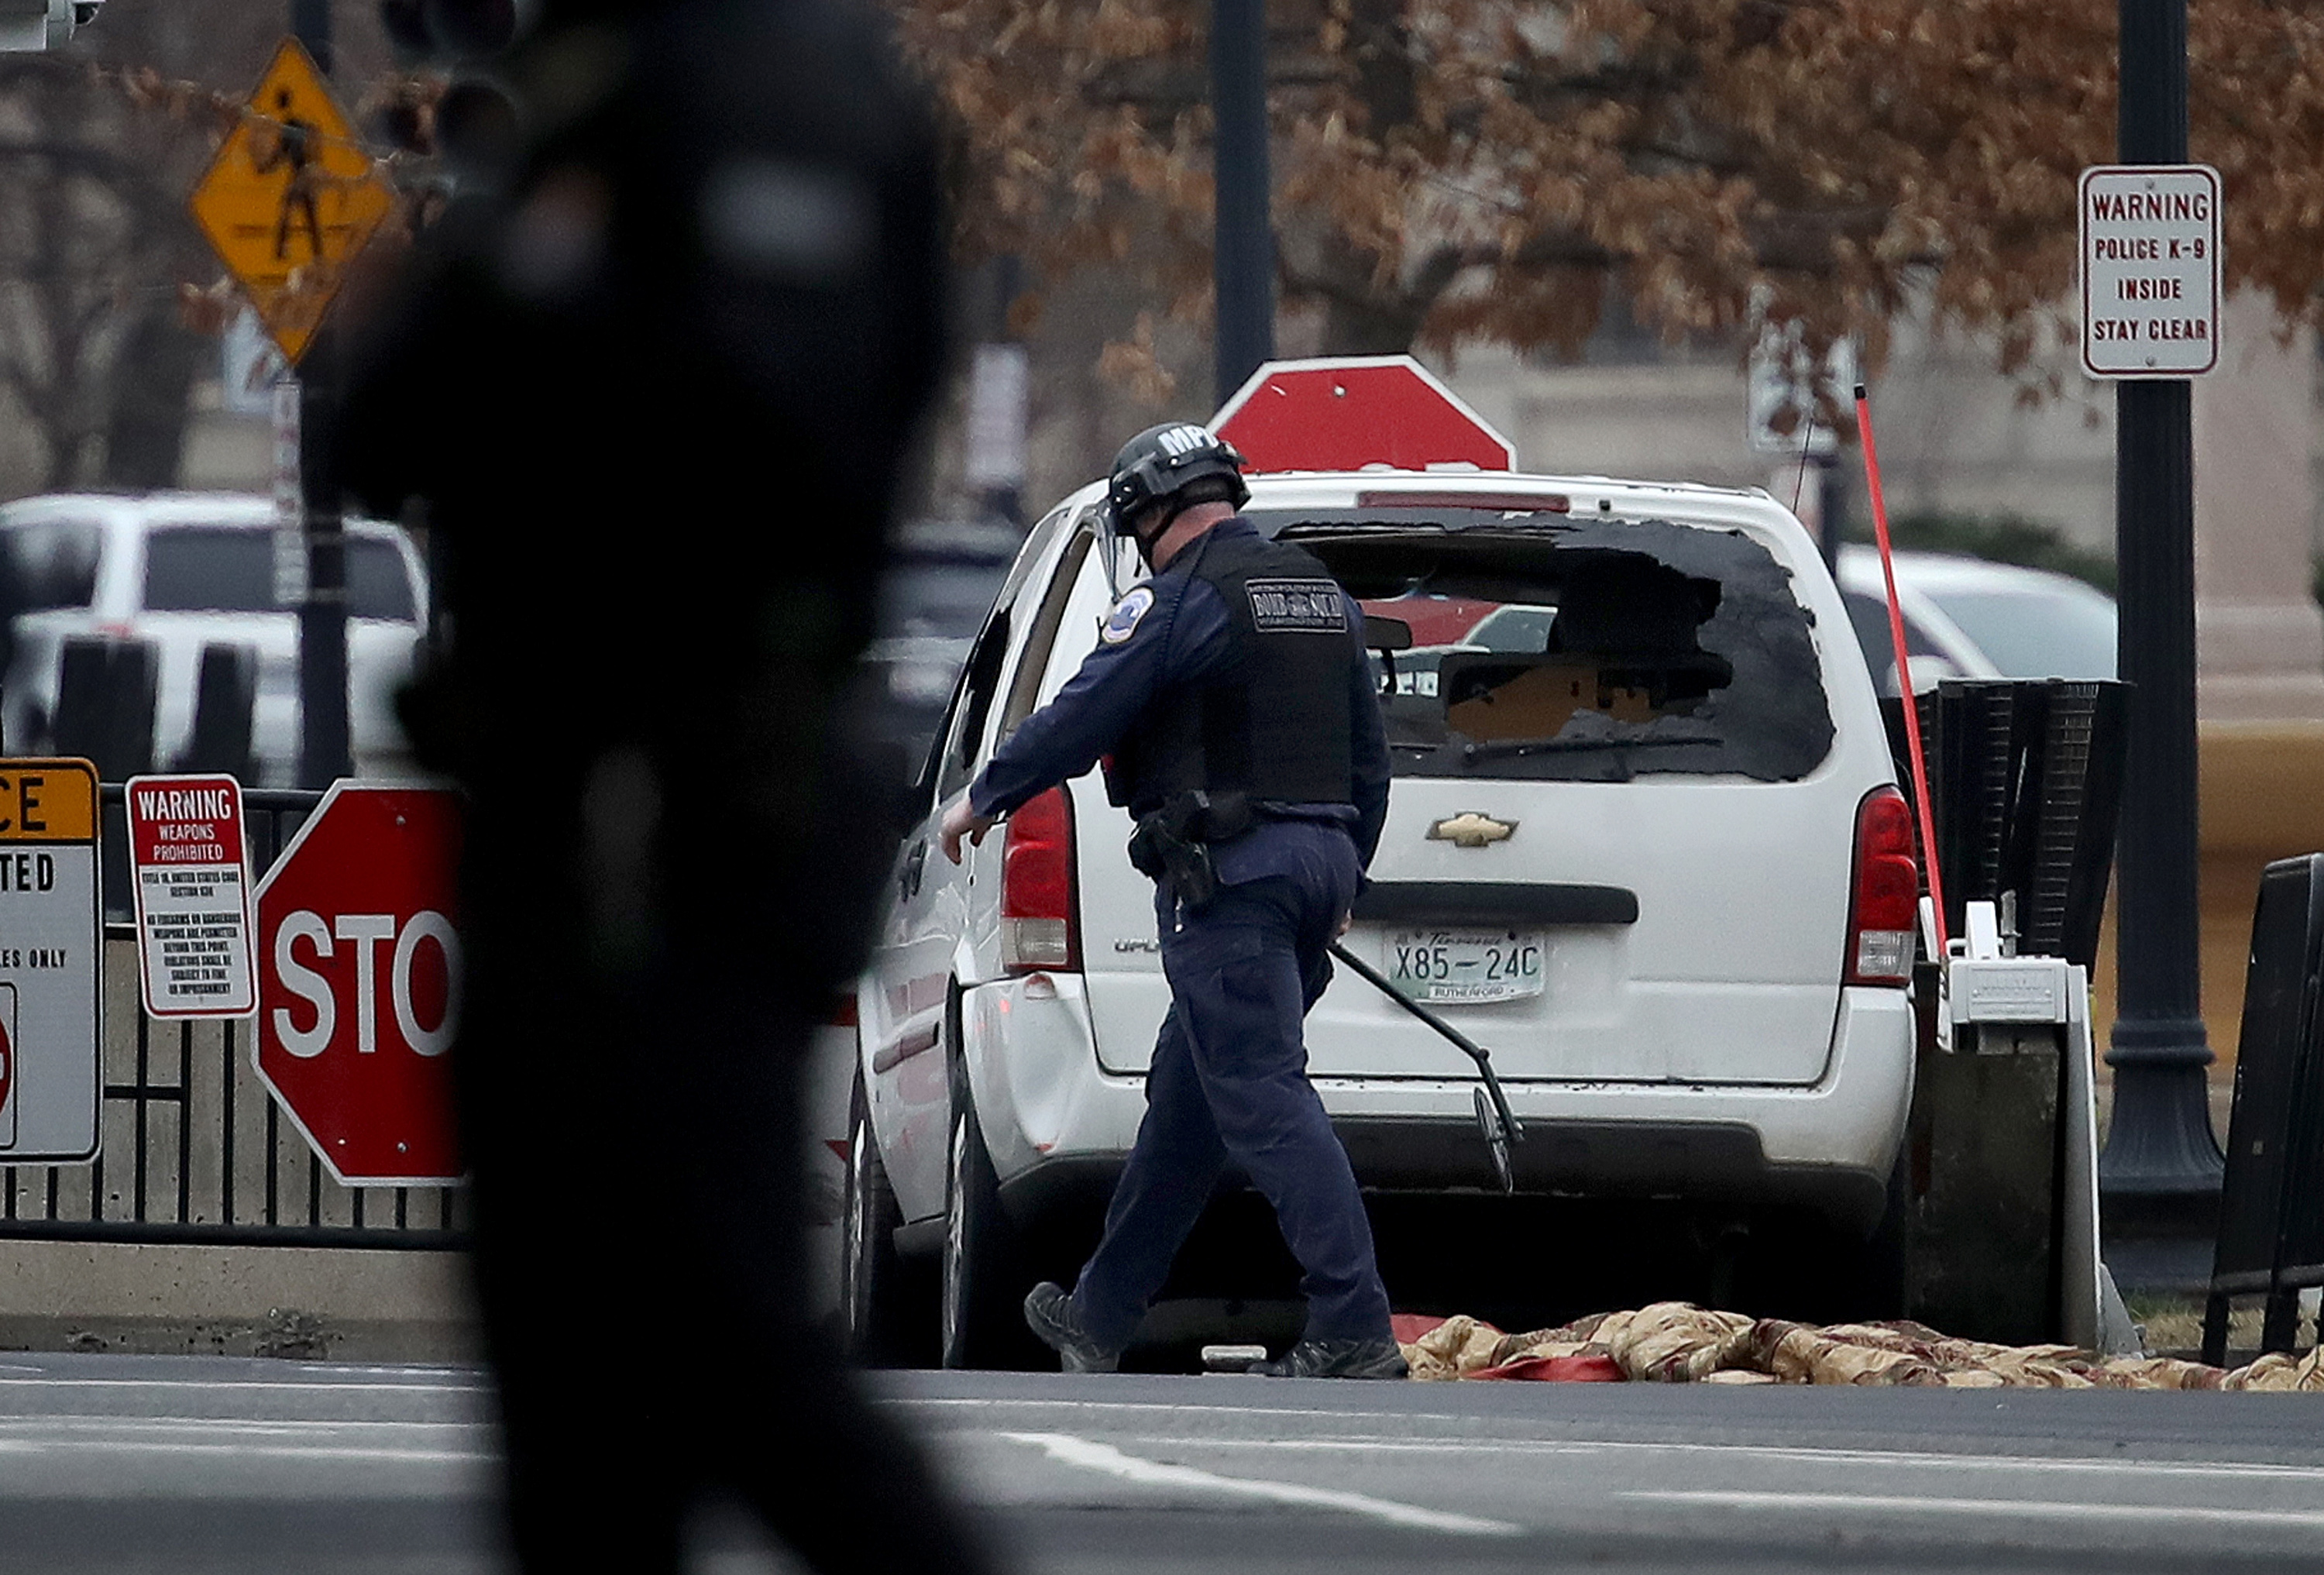 A member of a bomb squad inspects a vehicle that crashed into a barricade on the perimeter of the White House grounds February 23, 2018 in Washington, DC. A female driver was apprehended immediately after the incident by the uniformed division of the United States Secret Service.